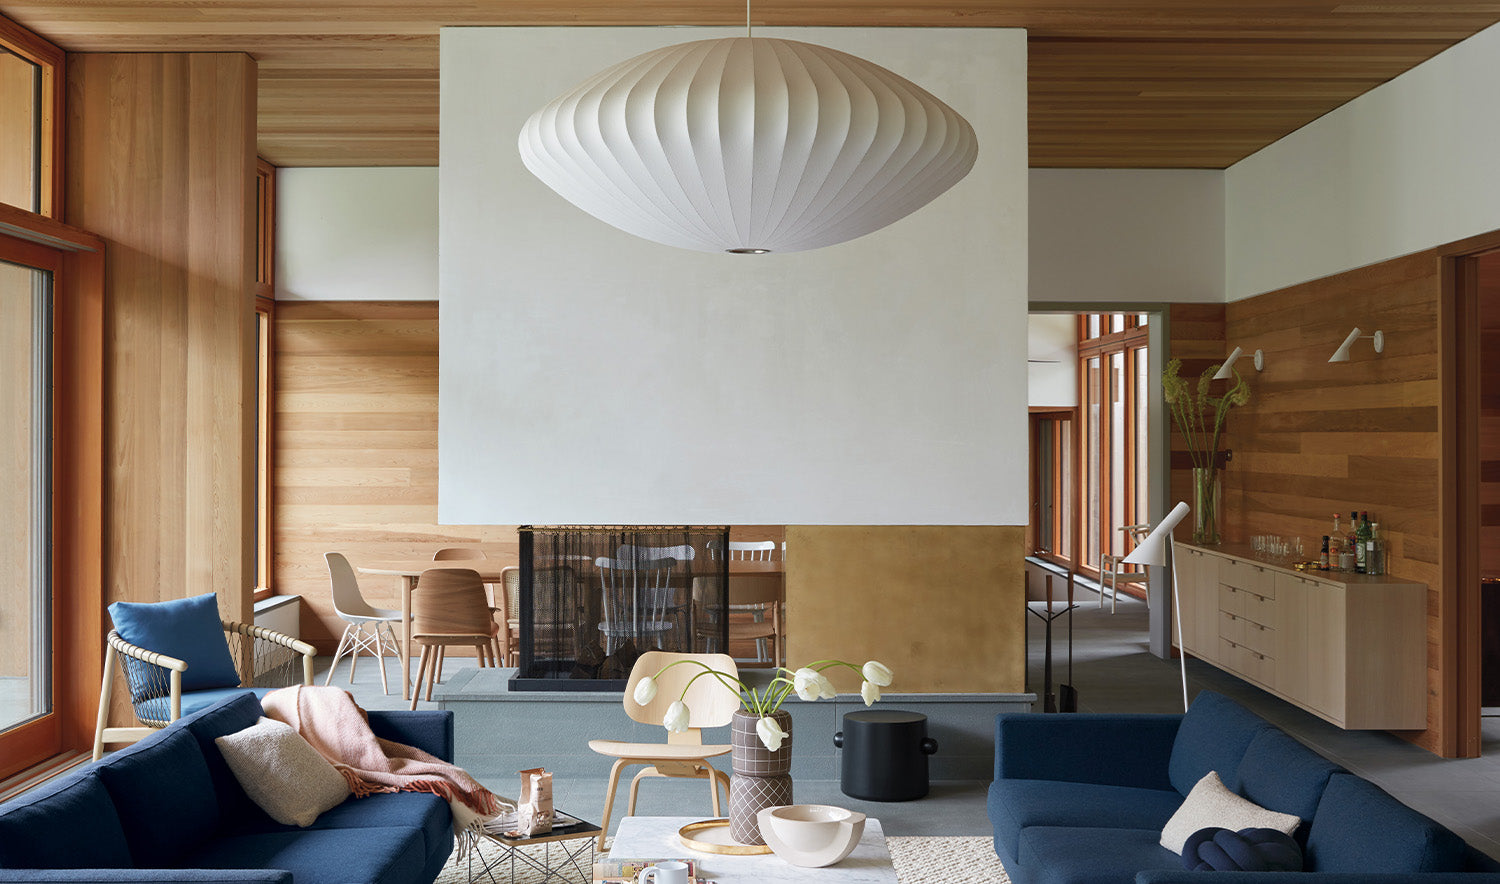 Nelson Saucer Bubble Lamp in a home setting